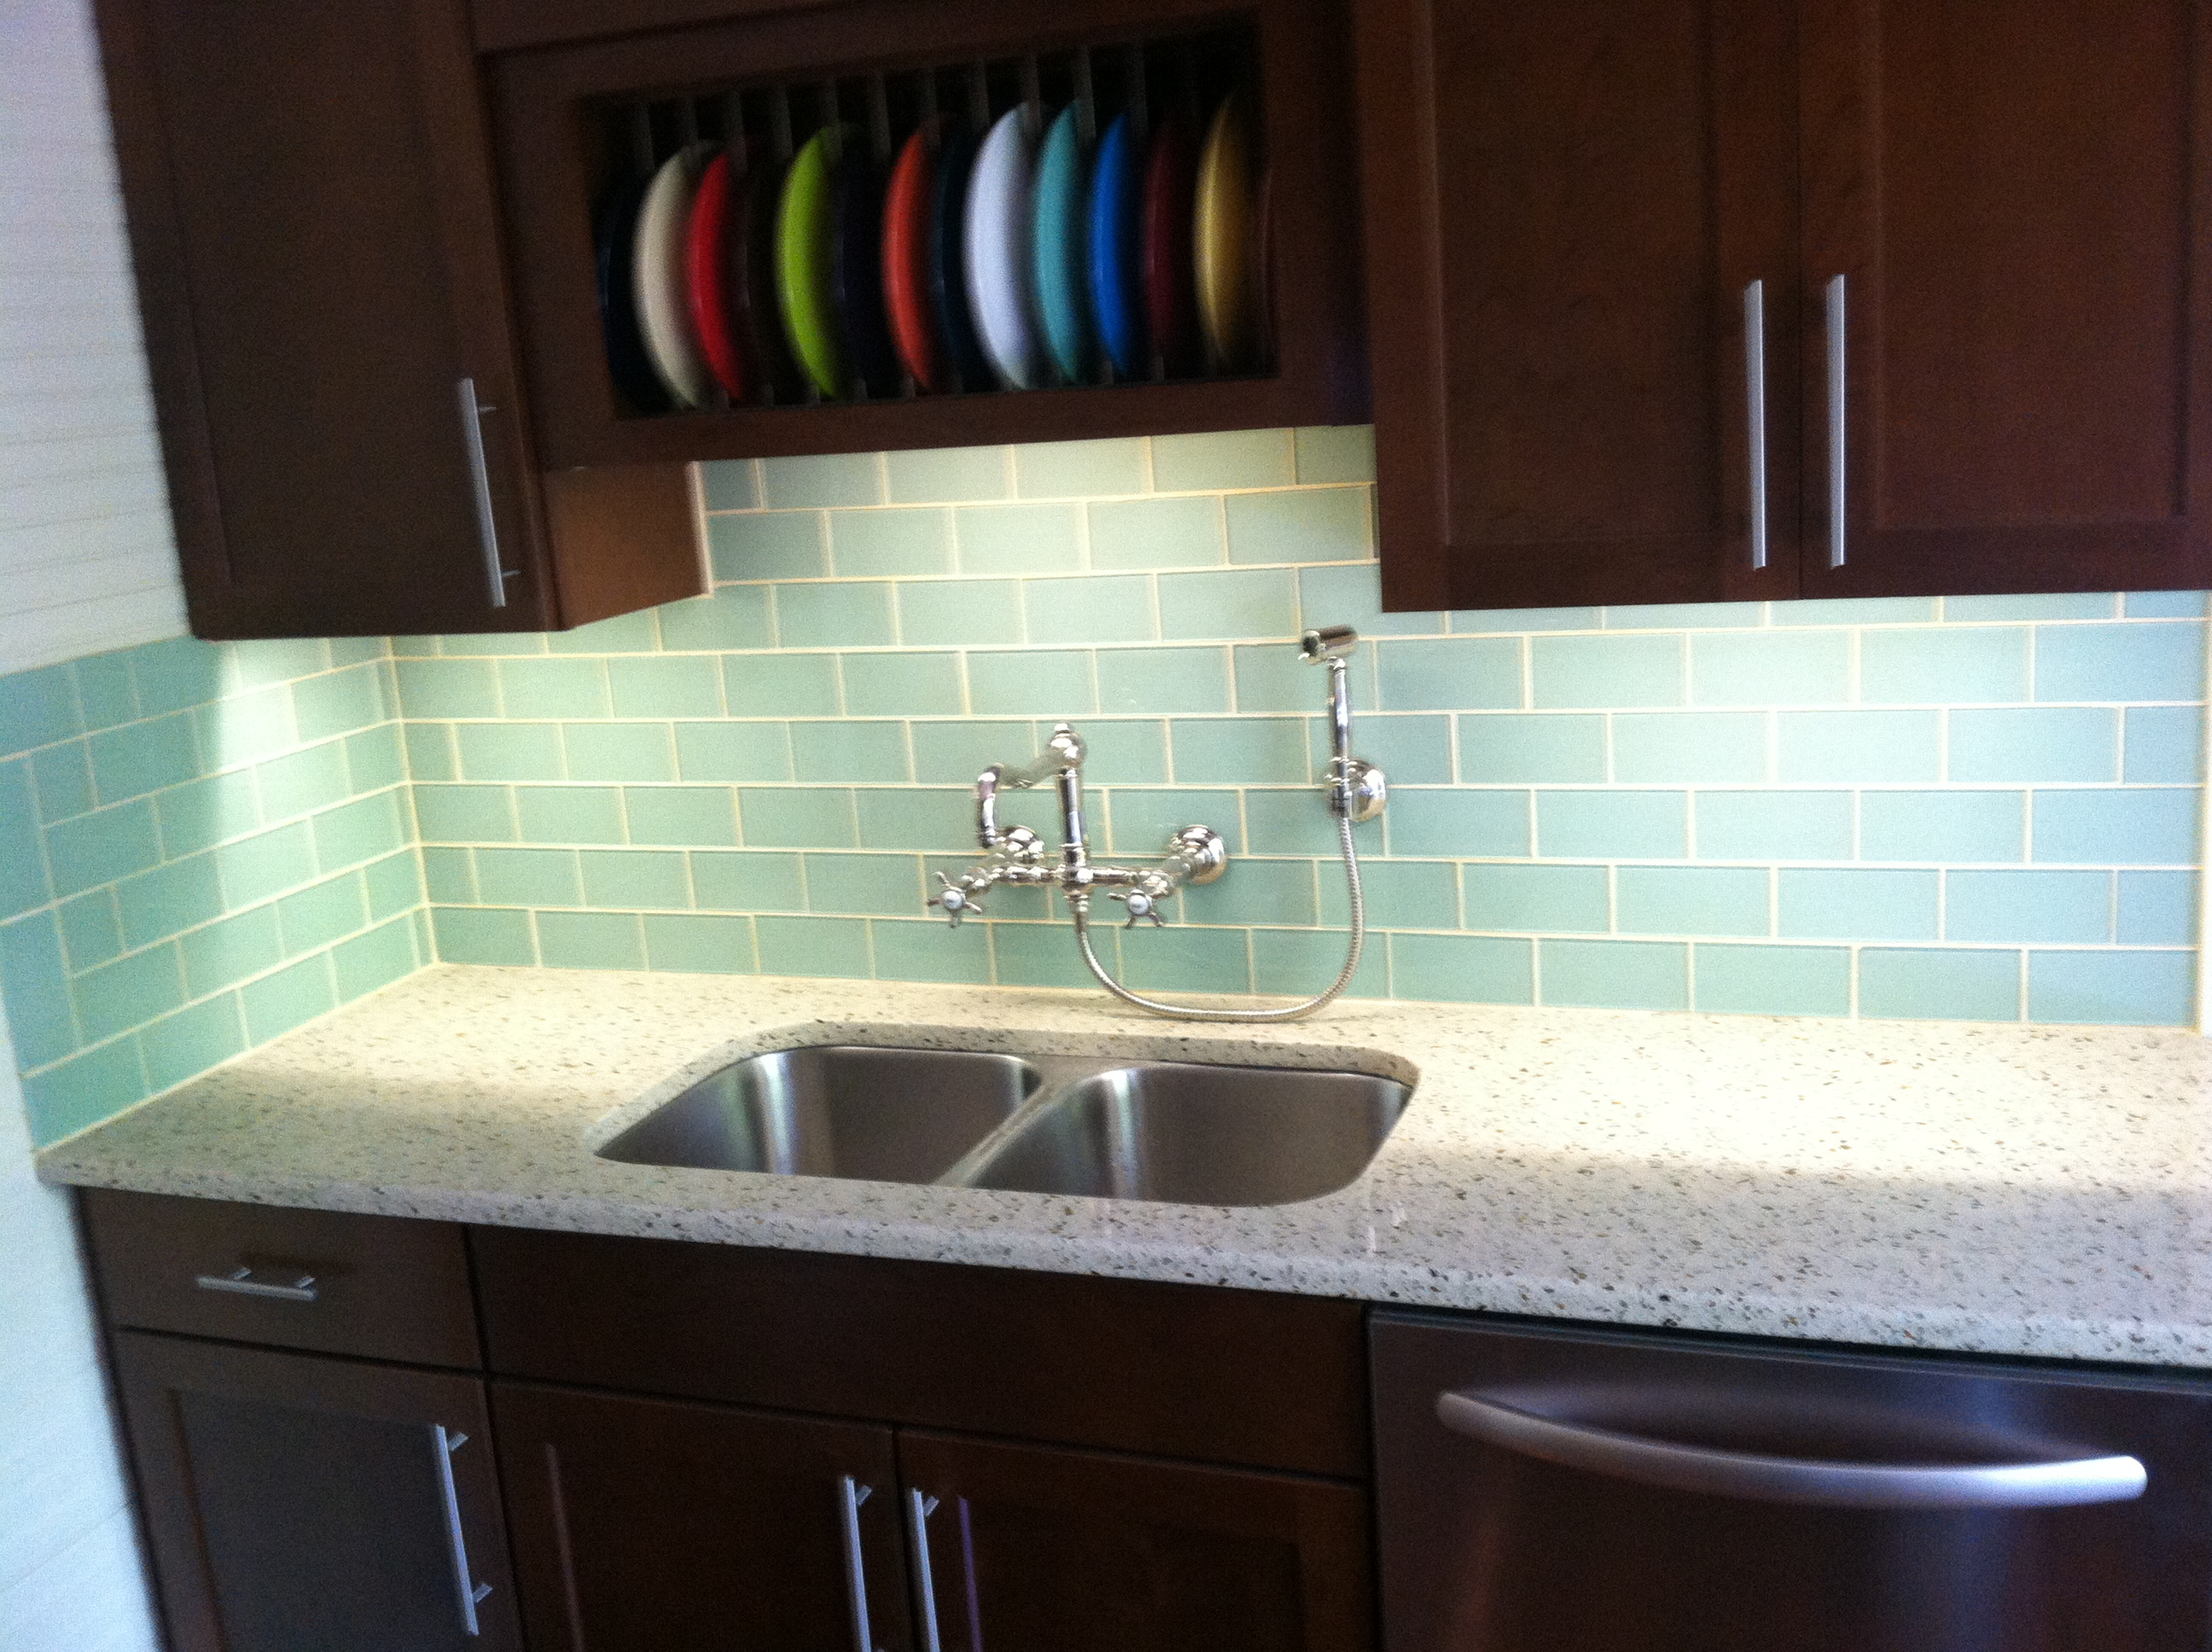 install bright under the cabinet lights above appealing glass tile